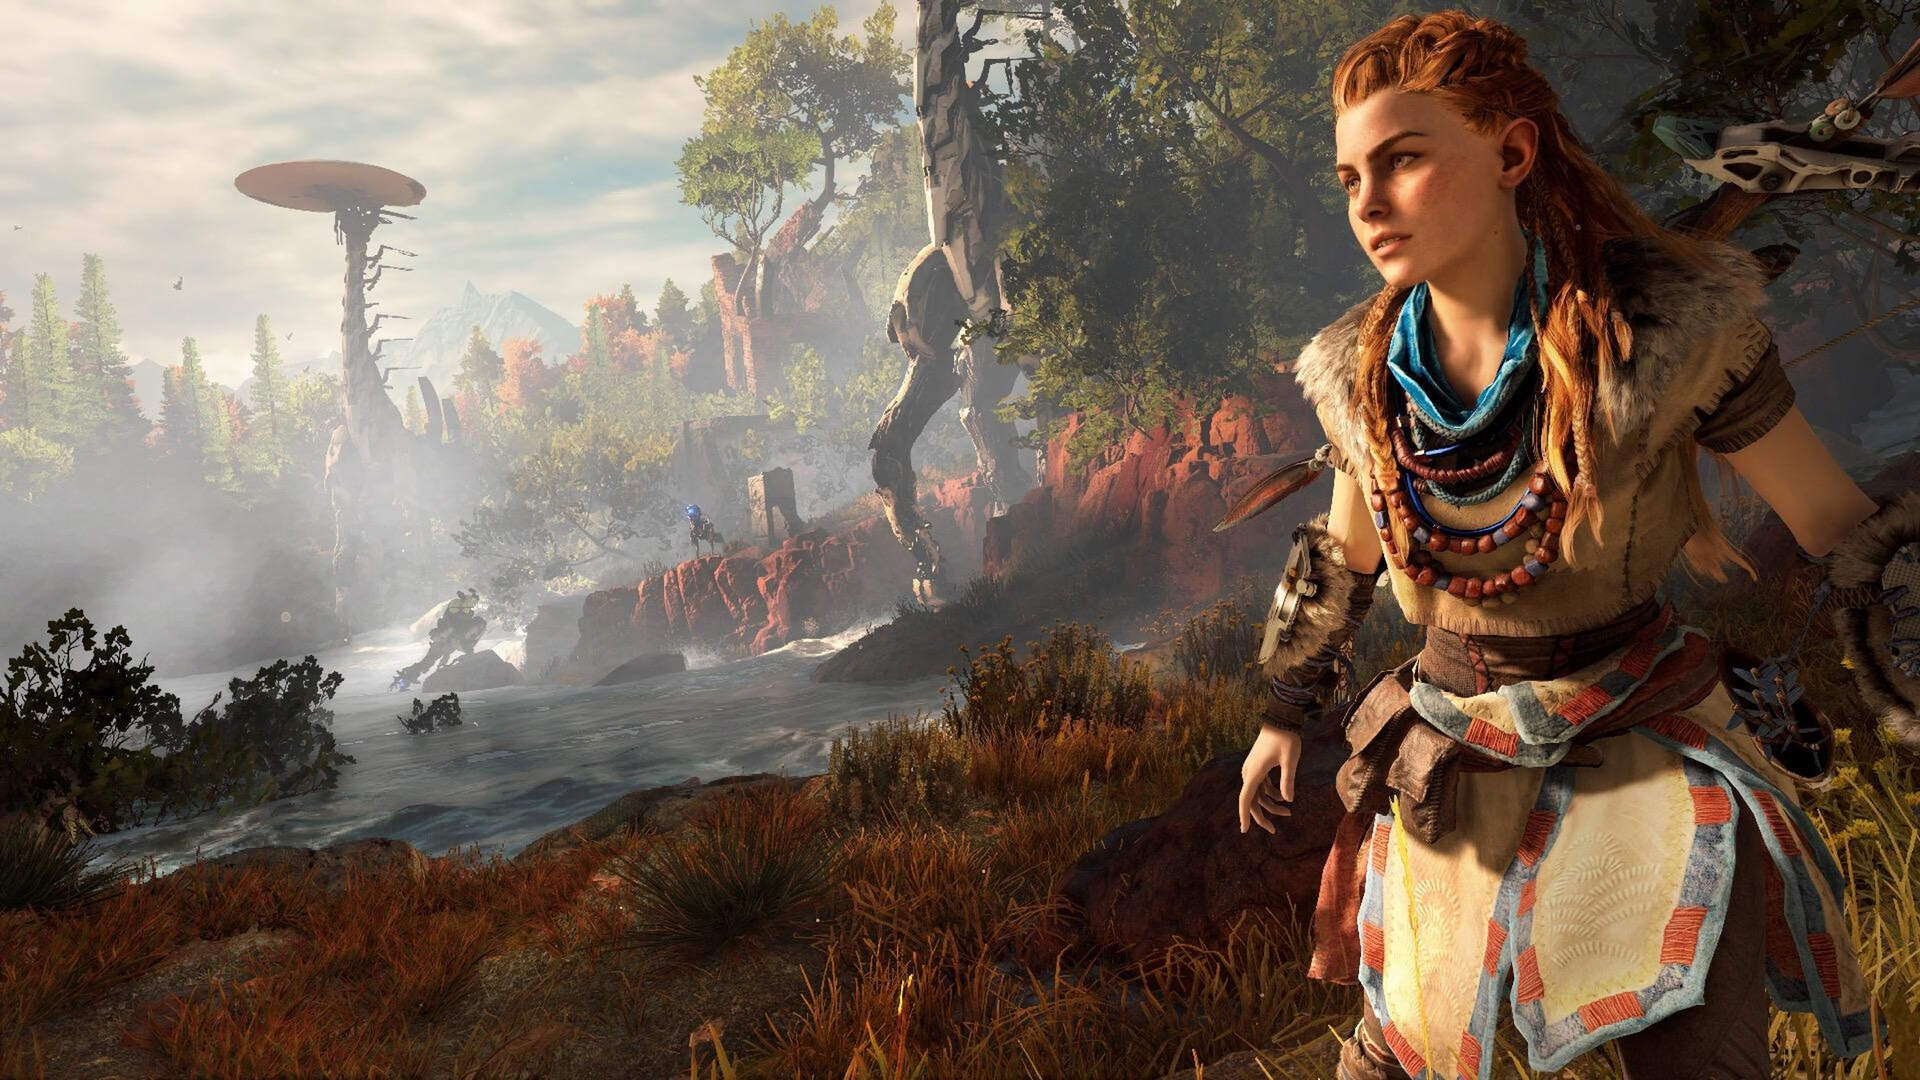 Guerrilla Games Hints At Horizon Zero Dawn Sequel on PS5 With Deleted Tweet